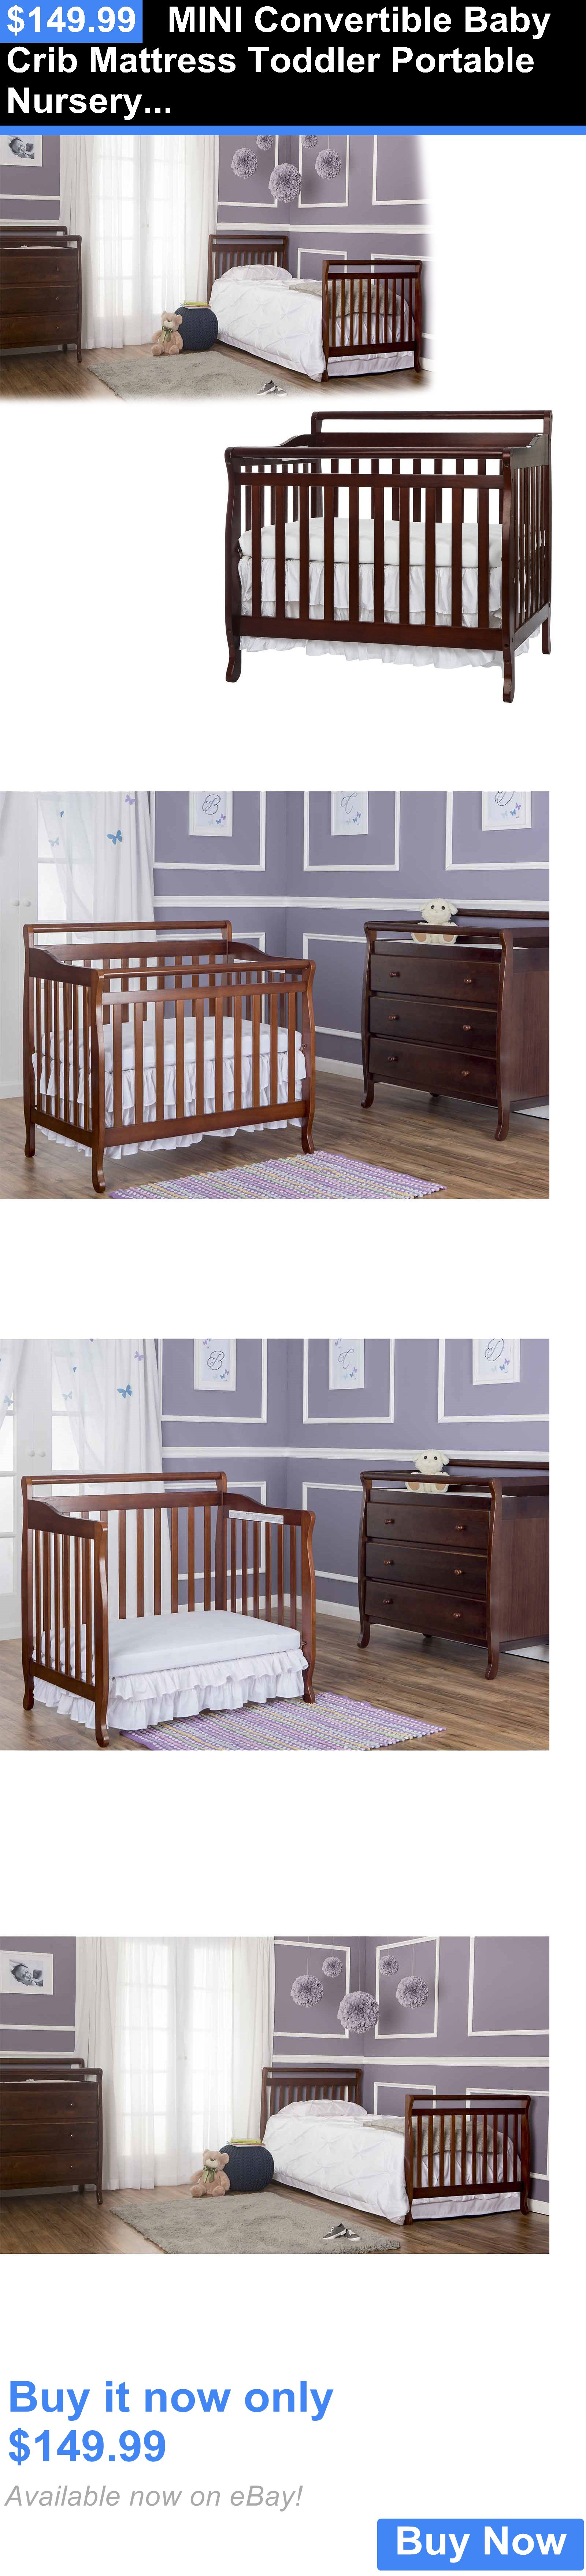 cream all grey madison future hayneedle of full bedding furniture baby cot black lauren legacy collection crib iron the nursery bed one white cribs unique size bedside classic small cots graco and colored master convertible